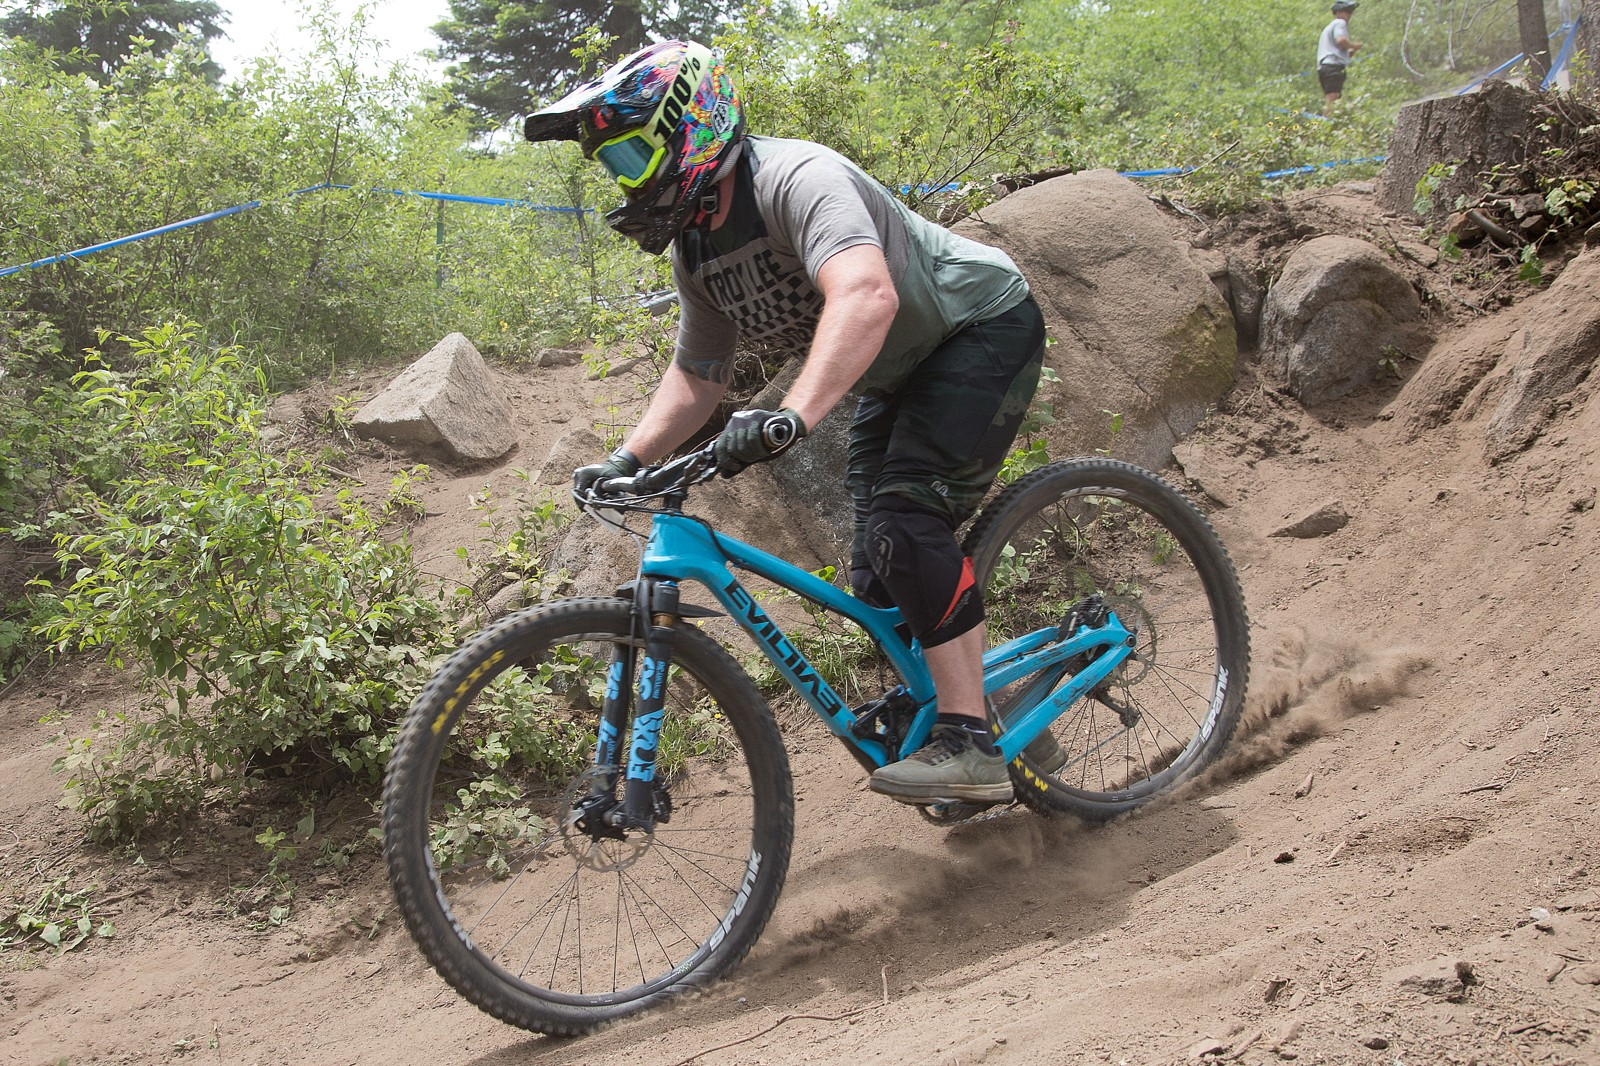 G-Out Project, Tamarack #USDH National-7 - G-Out Project - Tamarack NW Cup / #USDH - Mountain Biking Pictures - Vital MTB